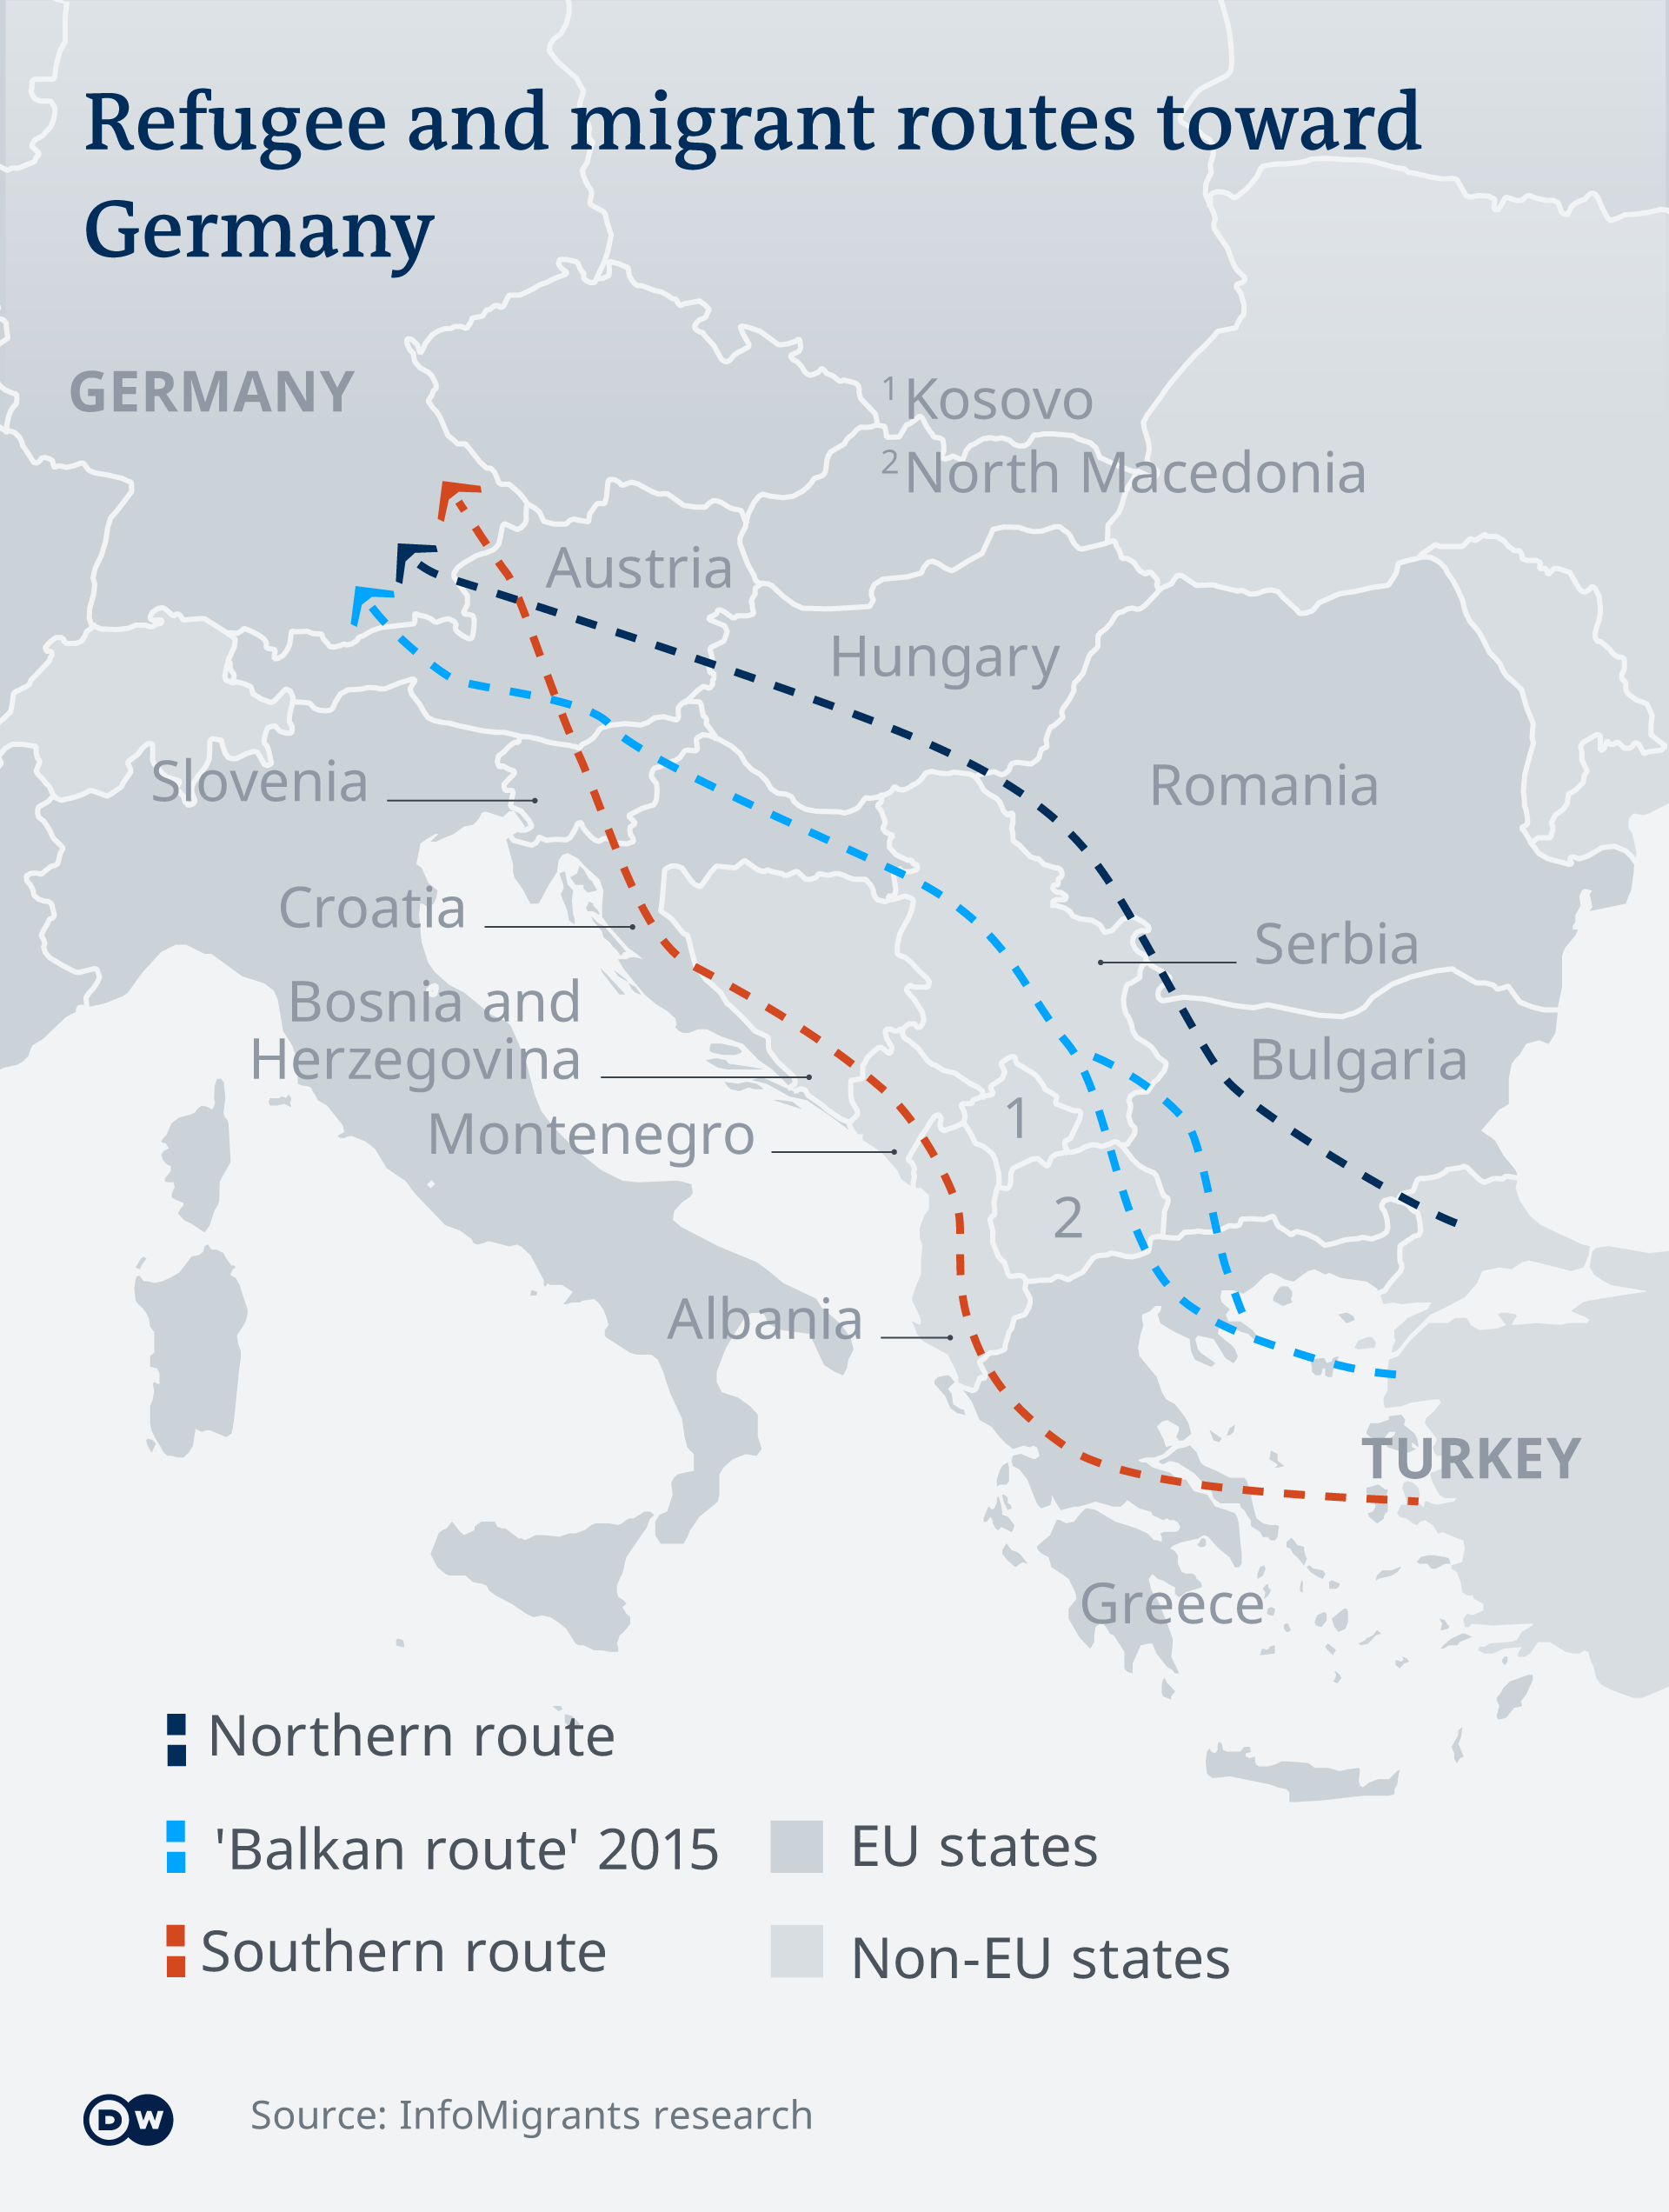 Migrant routes towards Europe